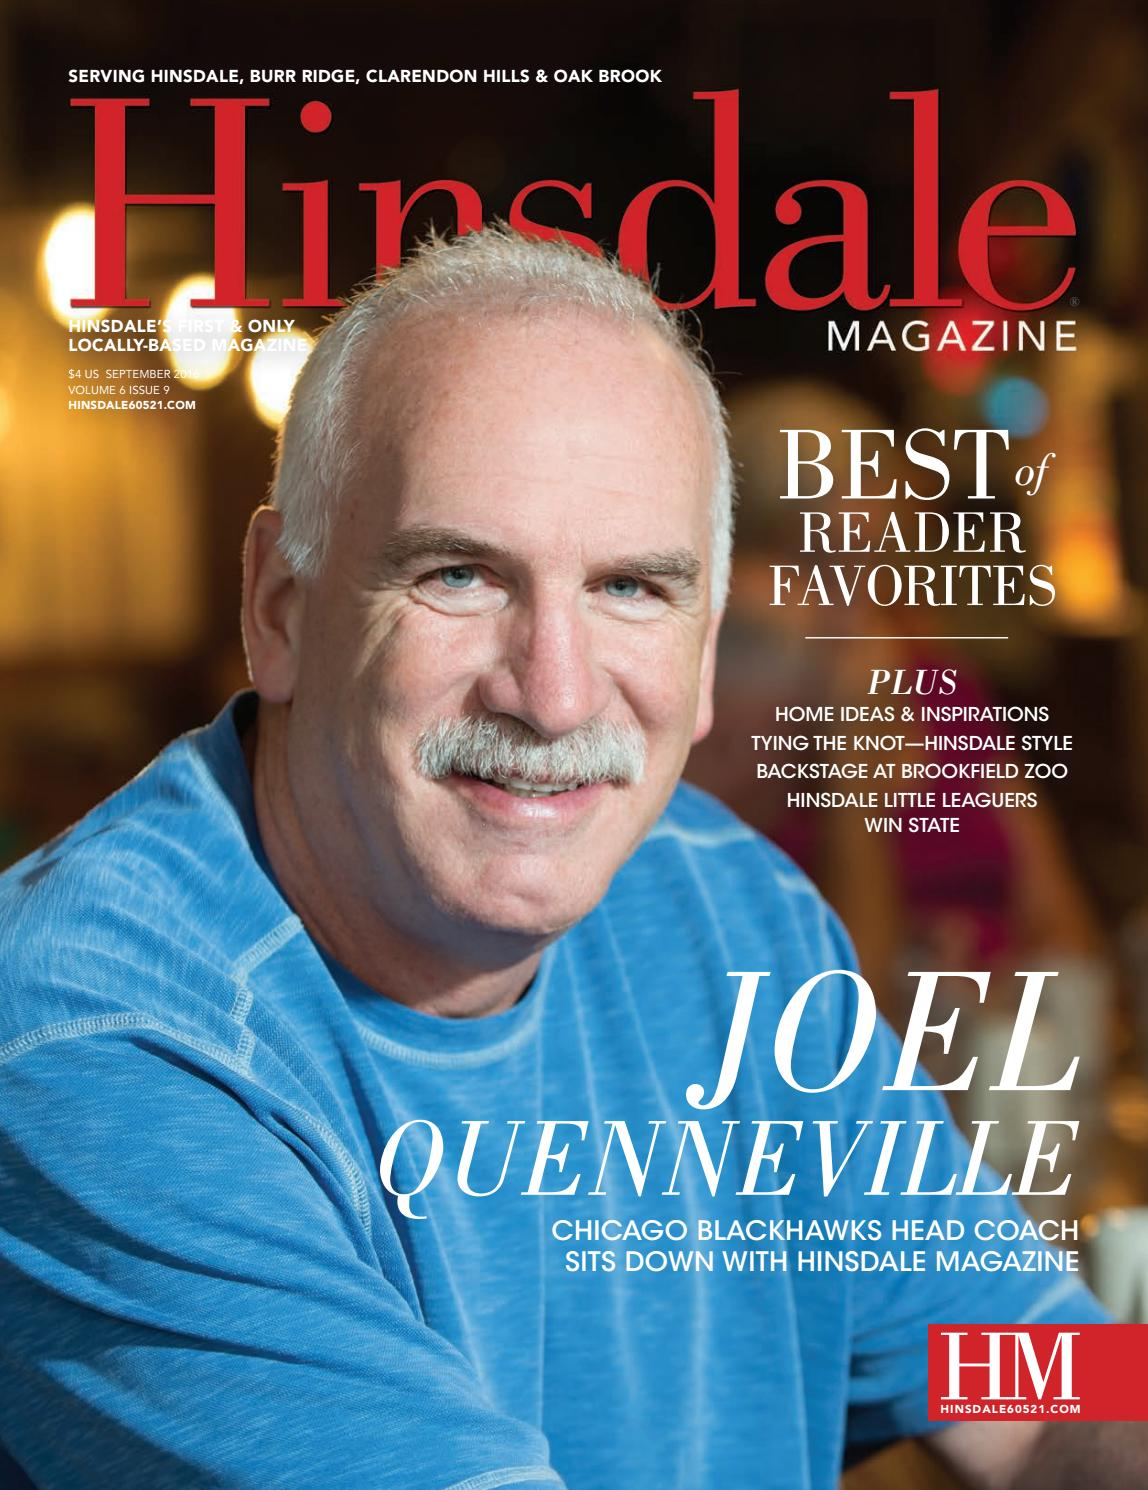 2ac745def0 Hinsdale Magazine September 2016 by www.HinsdaleMag.com - issuu